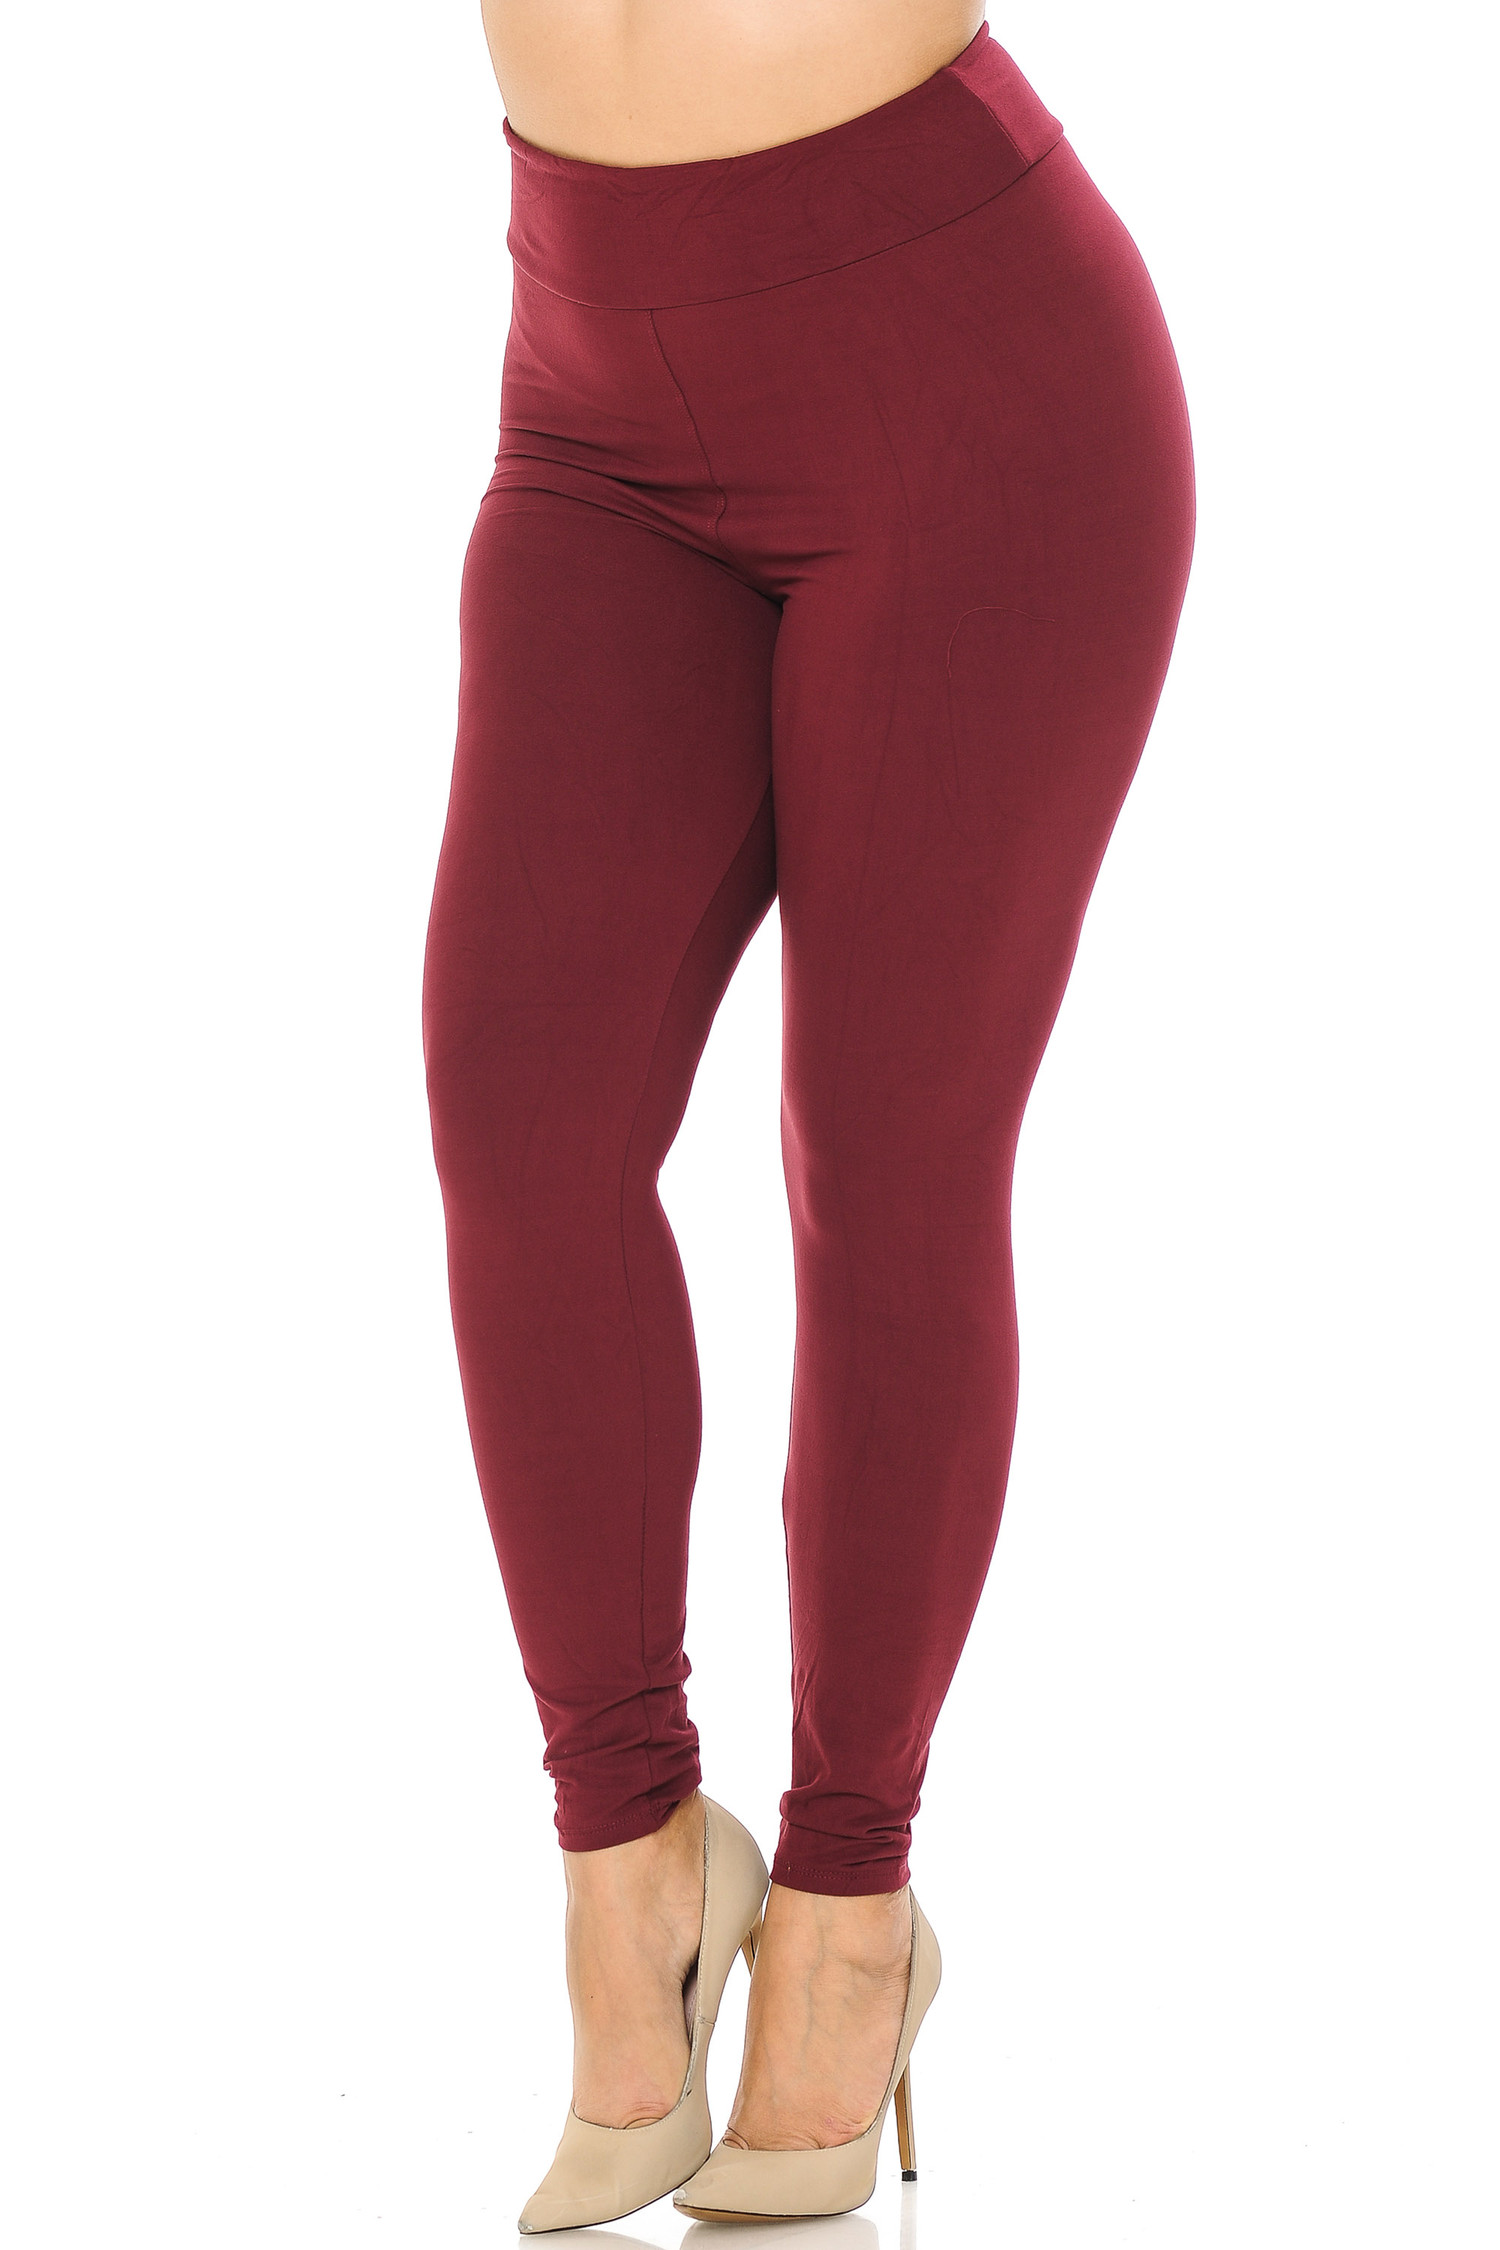 Buttery Soft Basic Solid Plus Size Leggings - EEVEE - 3 Inch